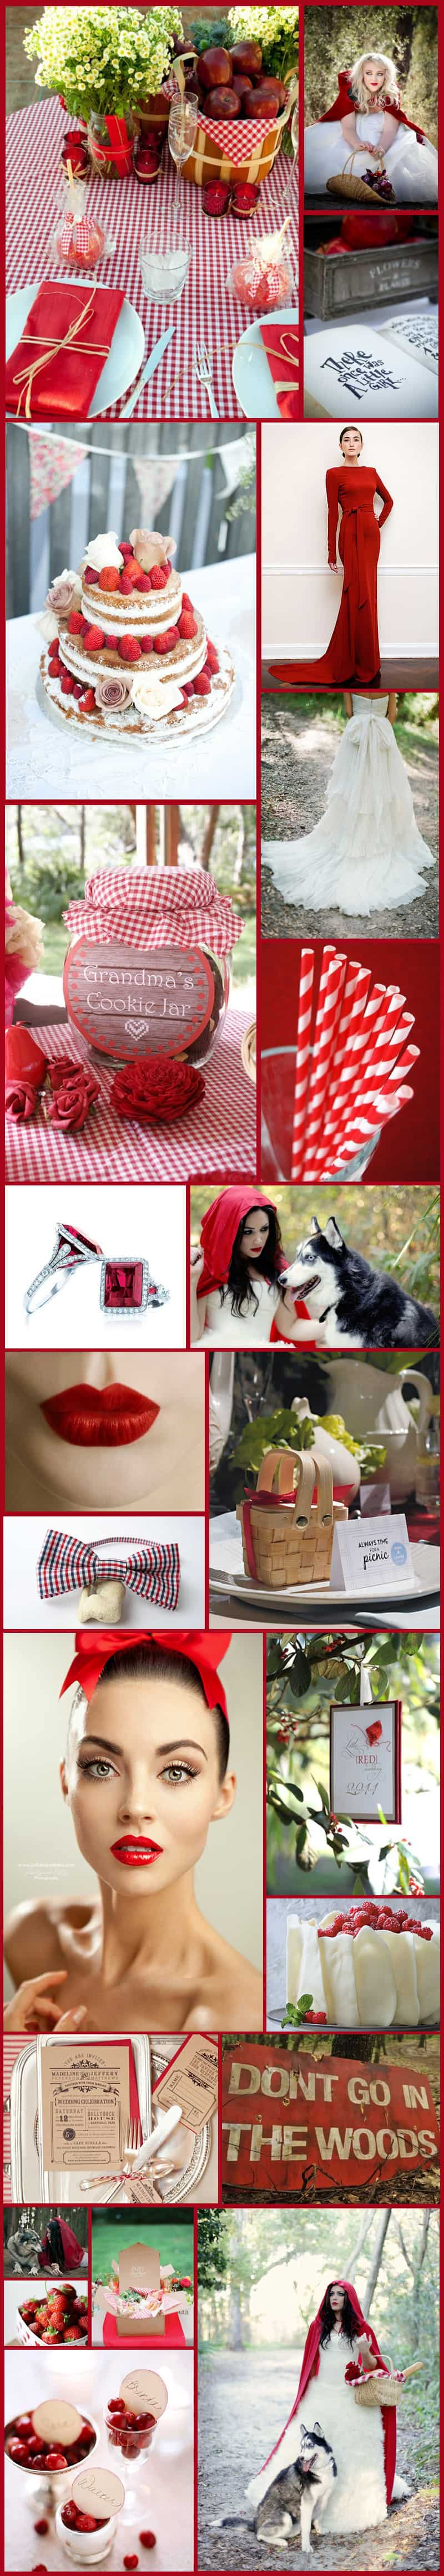 Little Red Riding Hood Inspiration Board